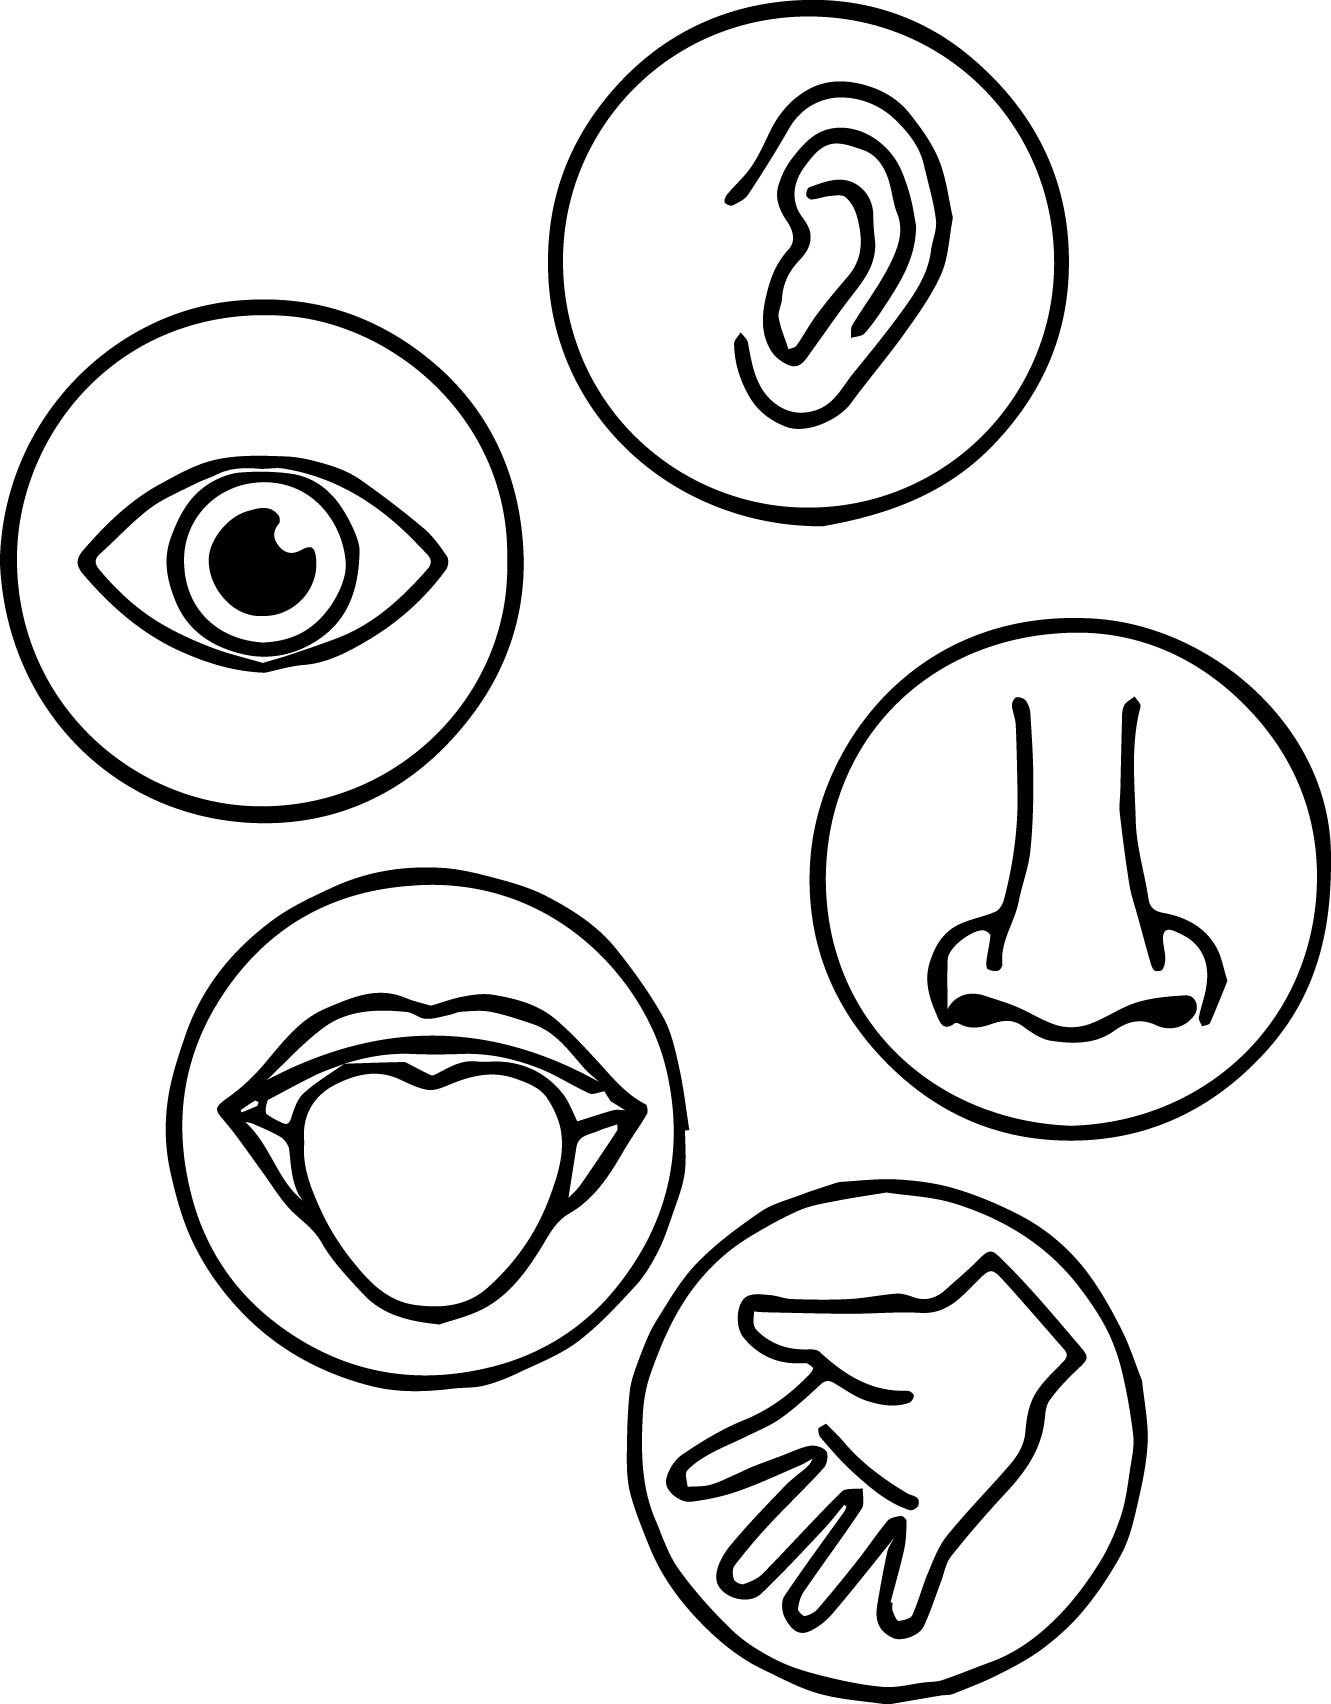 Awesome Senses Coloring Page Five Senses Worksheet Five Senses Preschool Senses Preschool